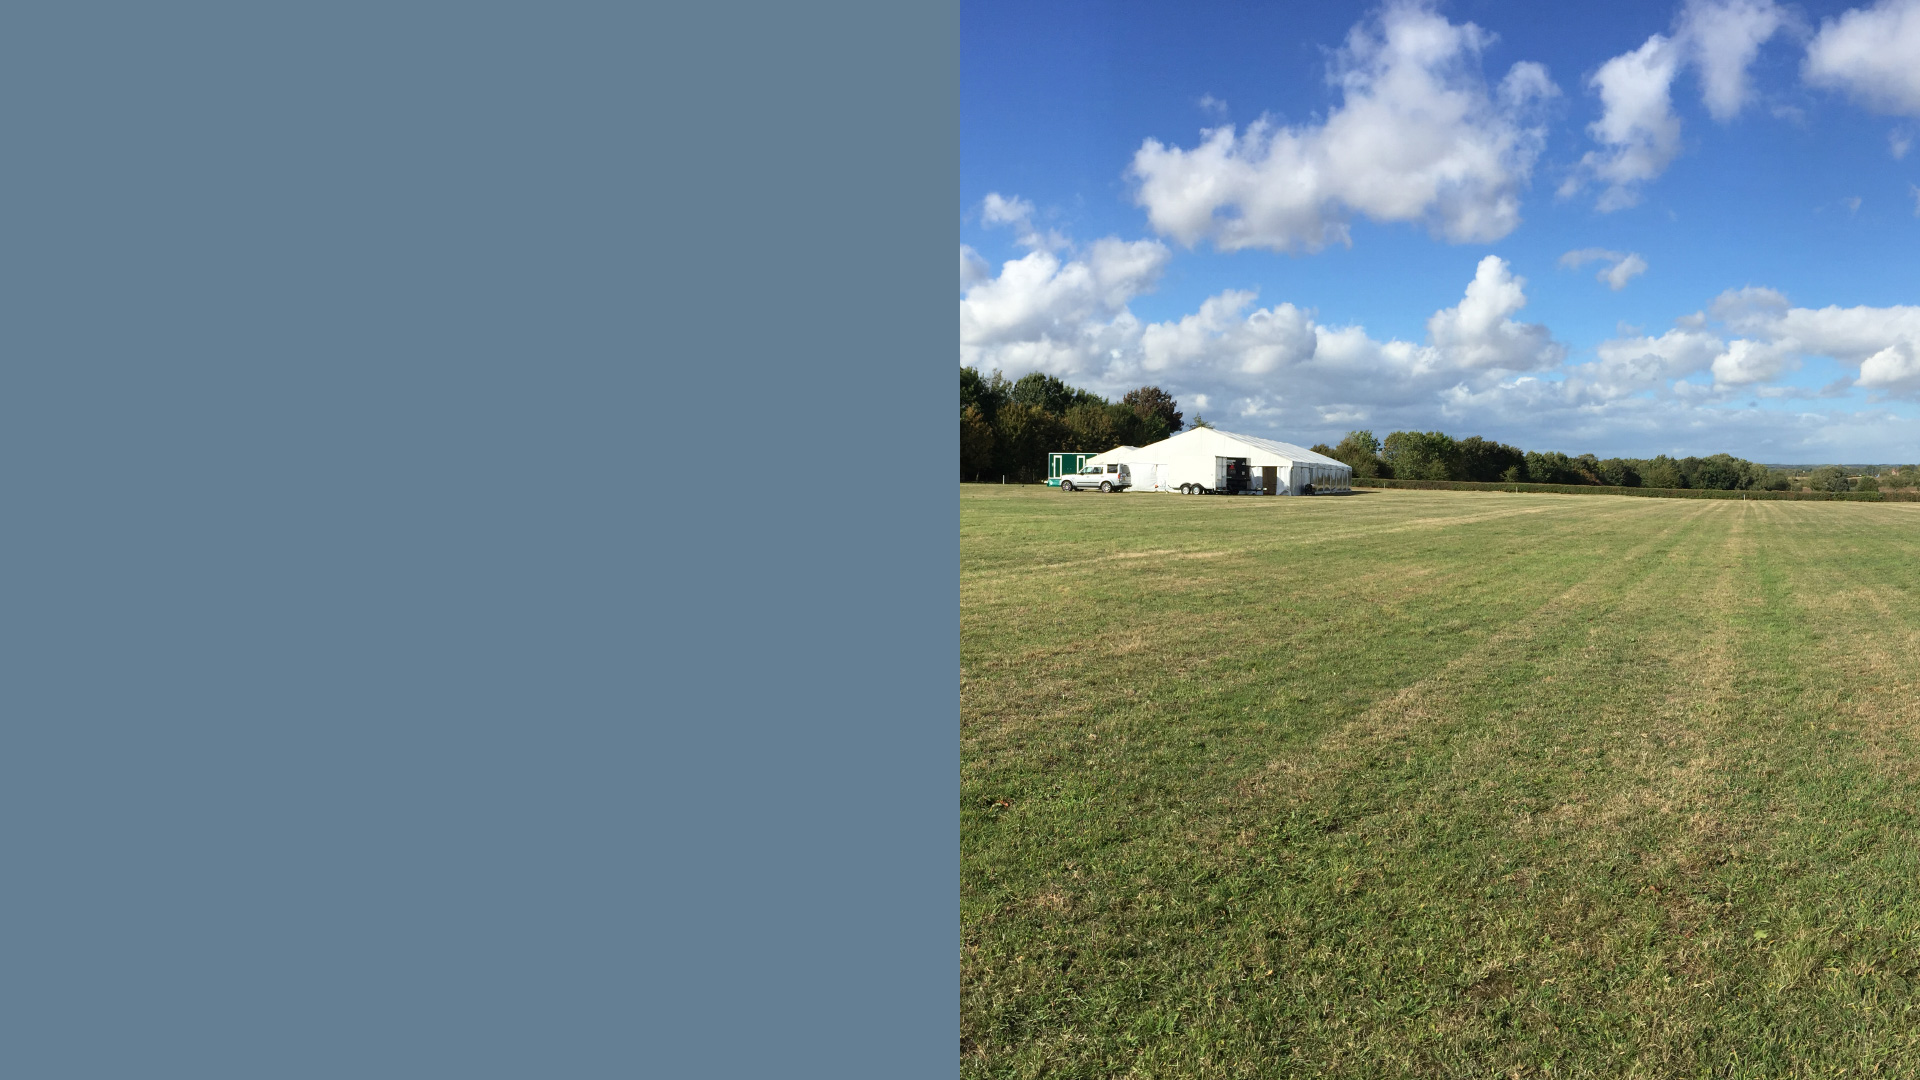 Willow Farm home of Flint & Lambourn Marquees Ltd